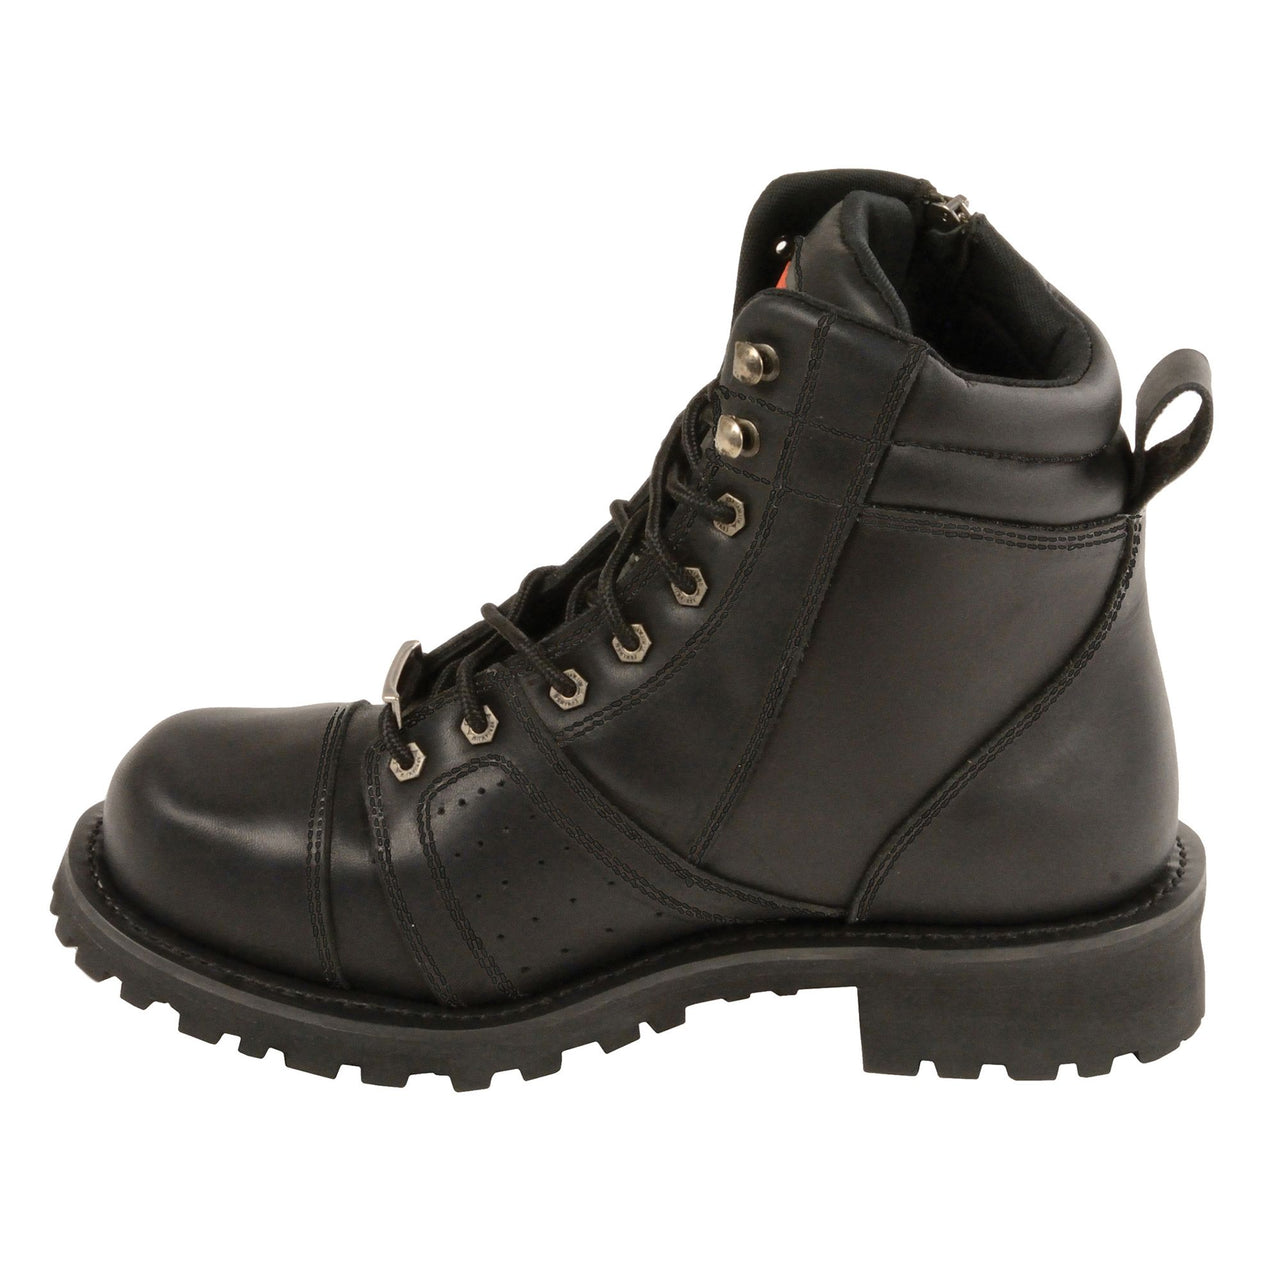 Men's Lace to Toe Boot w/Contrast Stitching -Wide - HighwayLeather